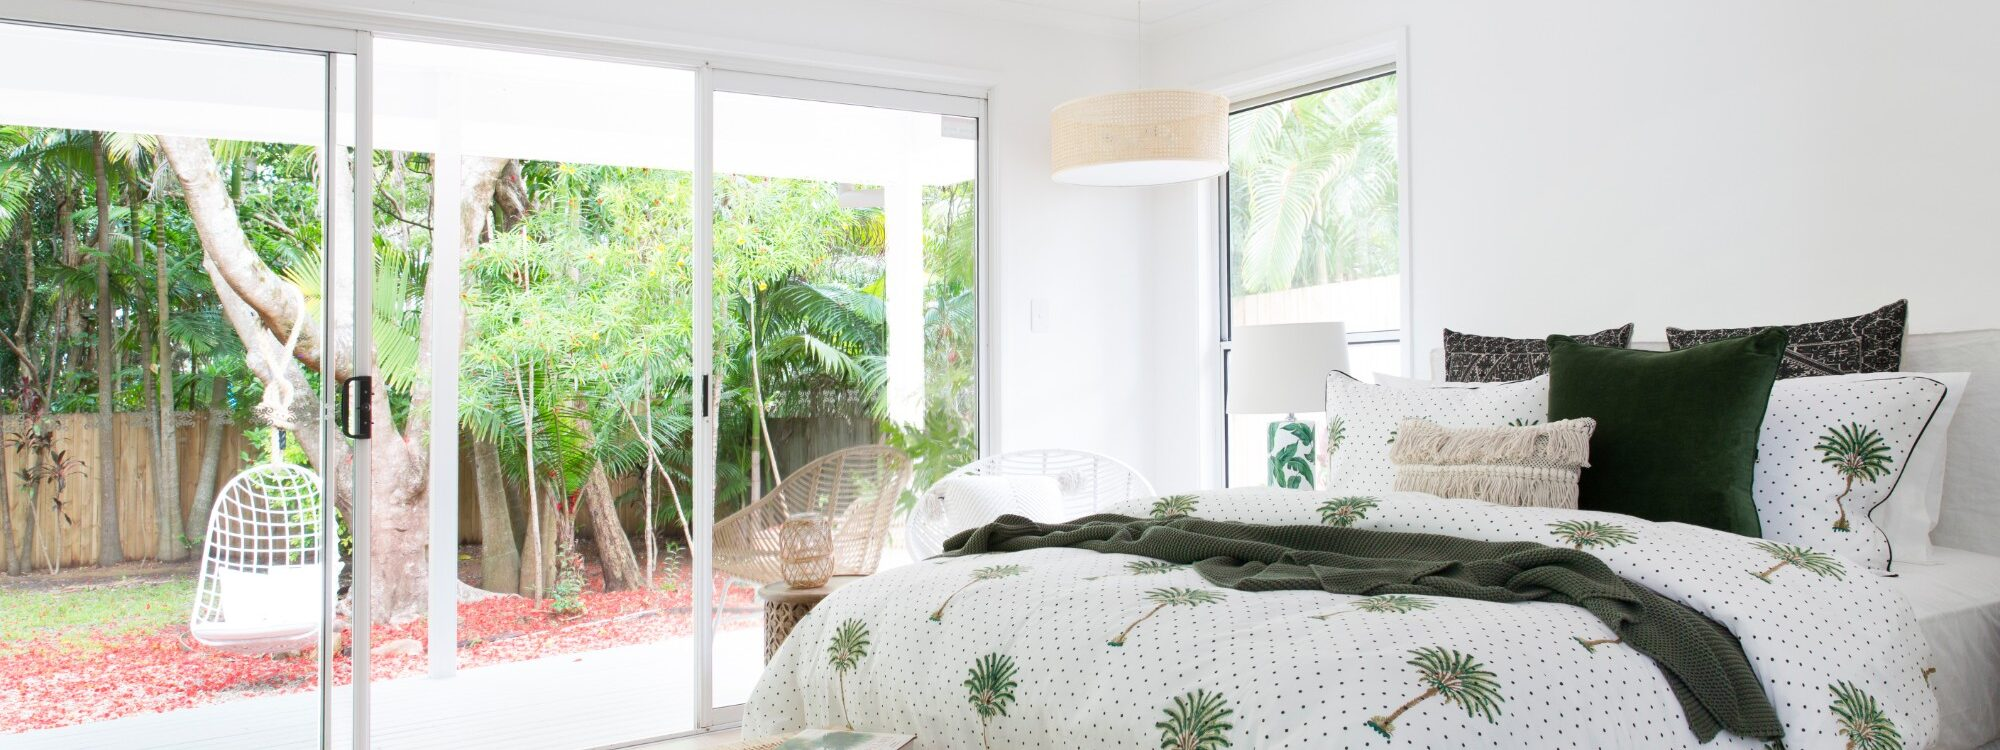 Barrel and Branch - Byron Bay - studio queen bedroom